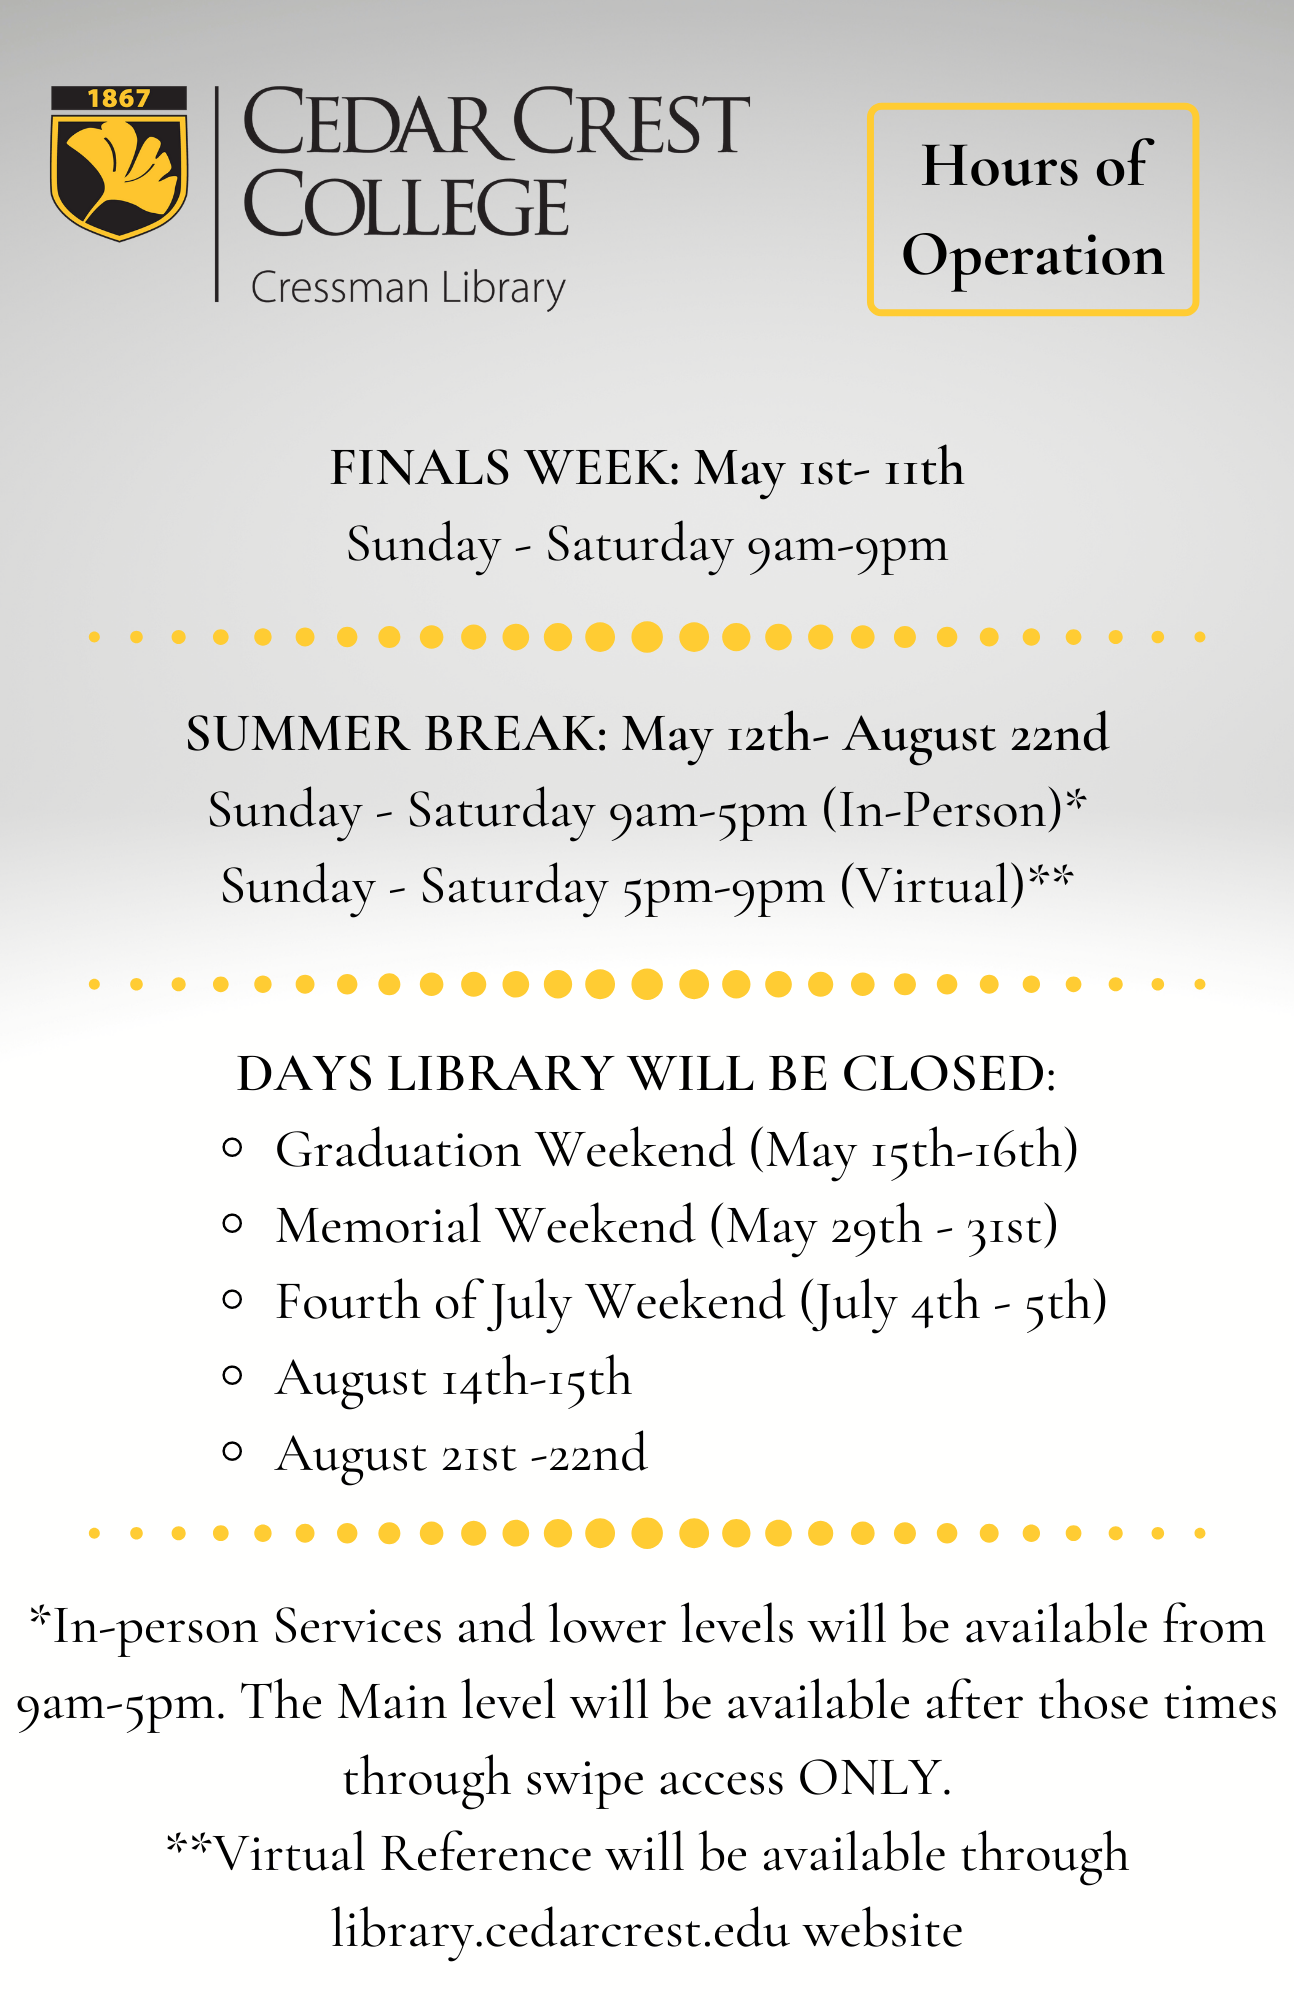 Summer Hours May 12 to August 22. Sunday through Saturday in person is 9 to 5. Sunday through Saturday virtual hours are 5 to 9. The library will be closed May 15, 16, 29, 31, July 4, 5, August 14, 15, 21 and 22.